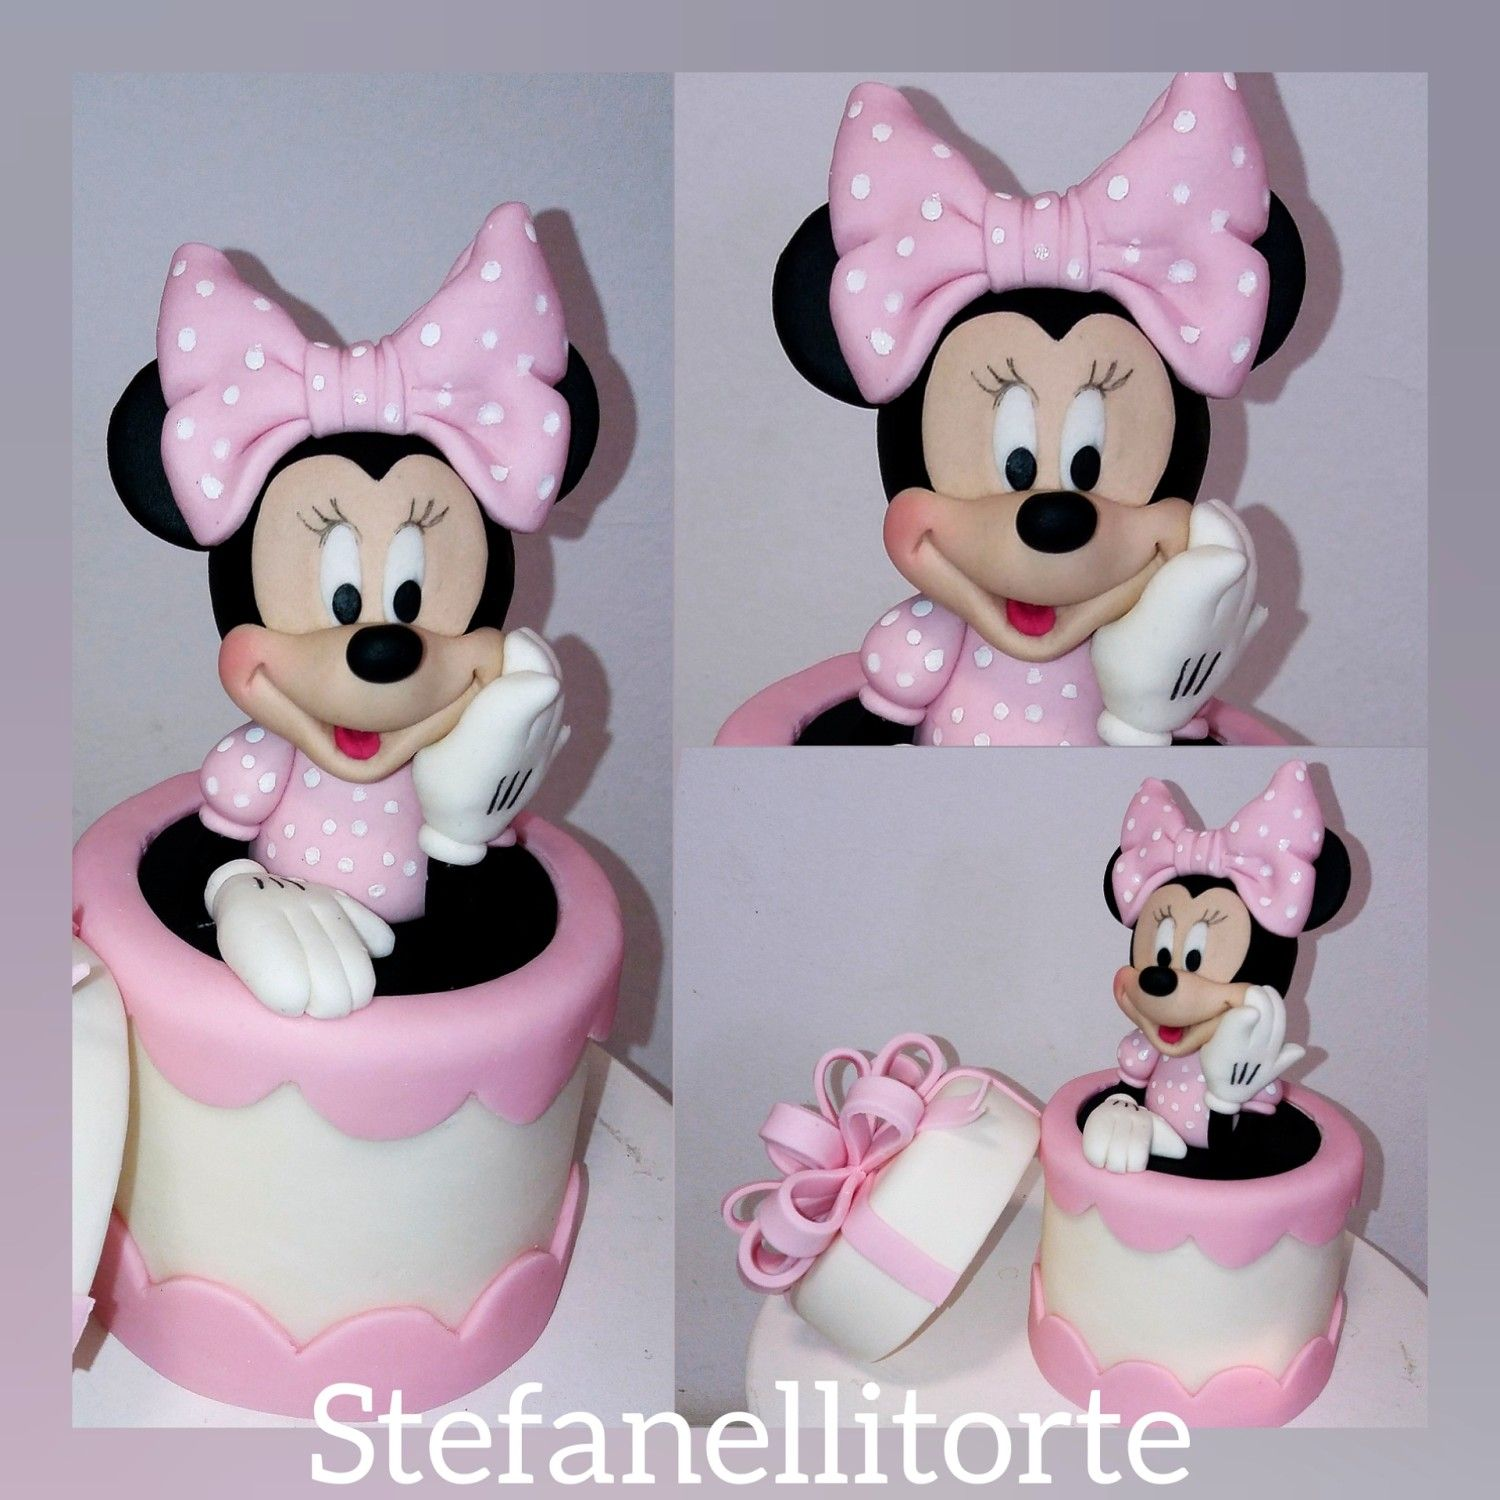 Minnie Mouse Cake Topper By Stefanelli Torte Minnie Mouse Cake Topper Minnie Mouse Cake Minnie Mouse